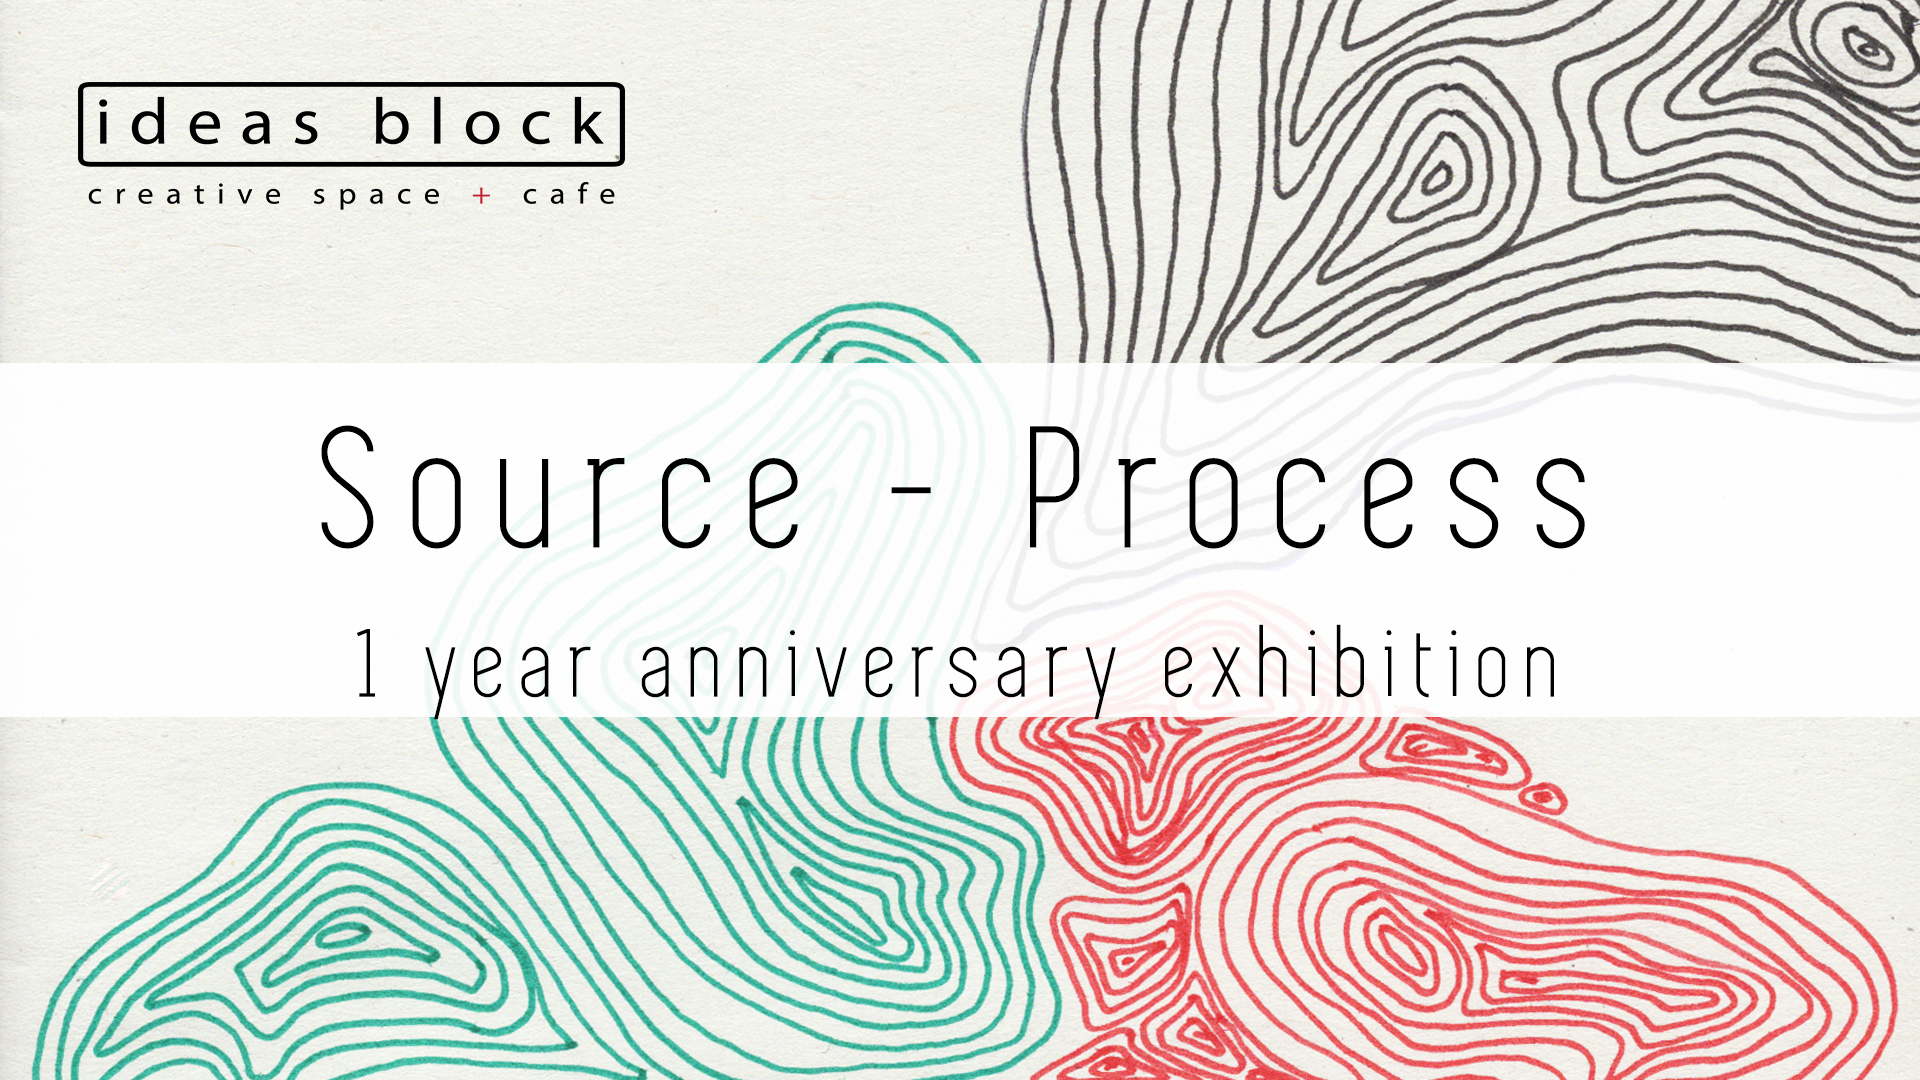 Source - Process collective anniversary exhibition